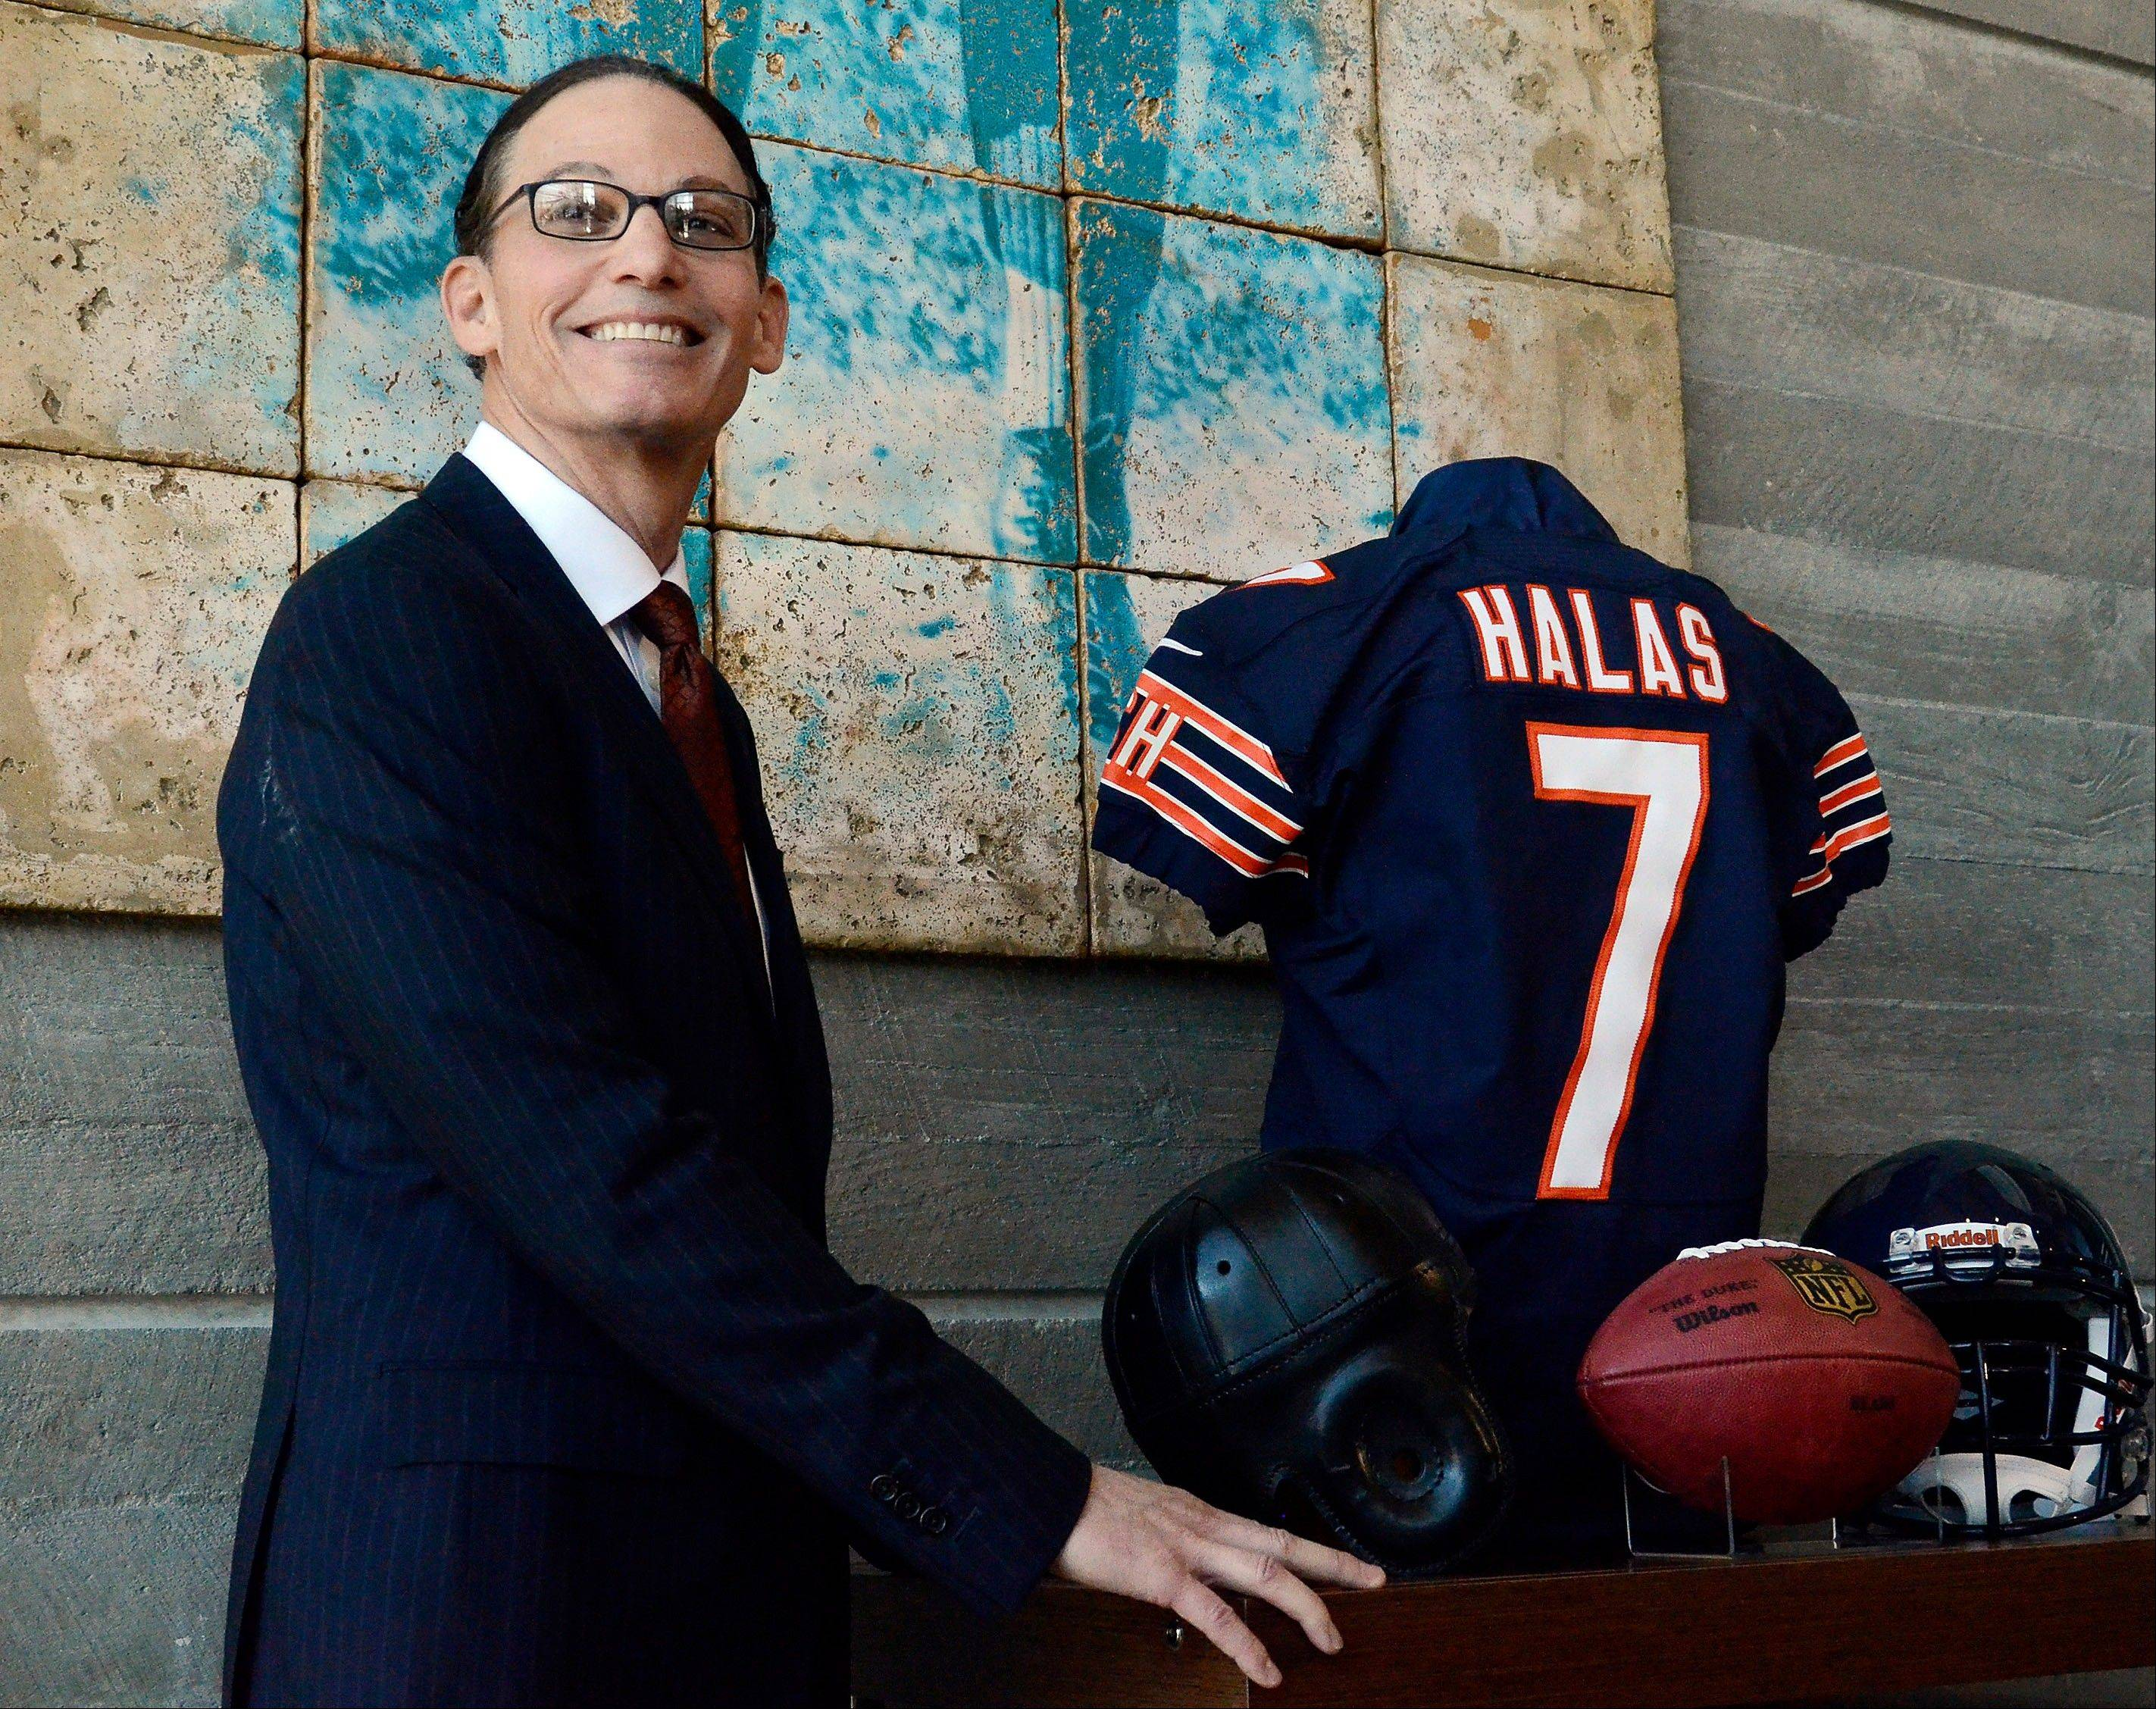 New Bears head coach Marc Trestman should have little trouble dealing with anything in Chicago after what he had to deal with when he worked for the Raiders.